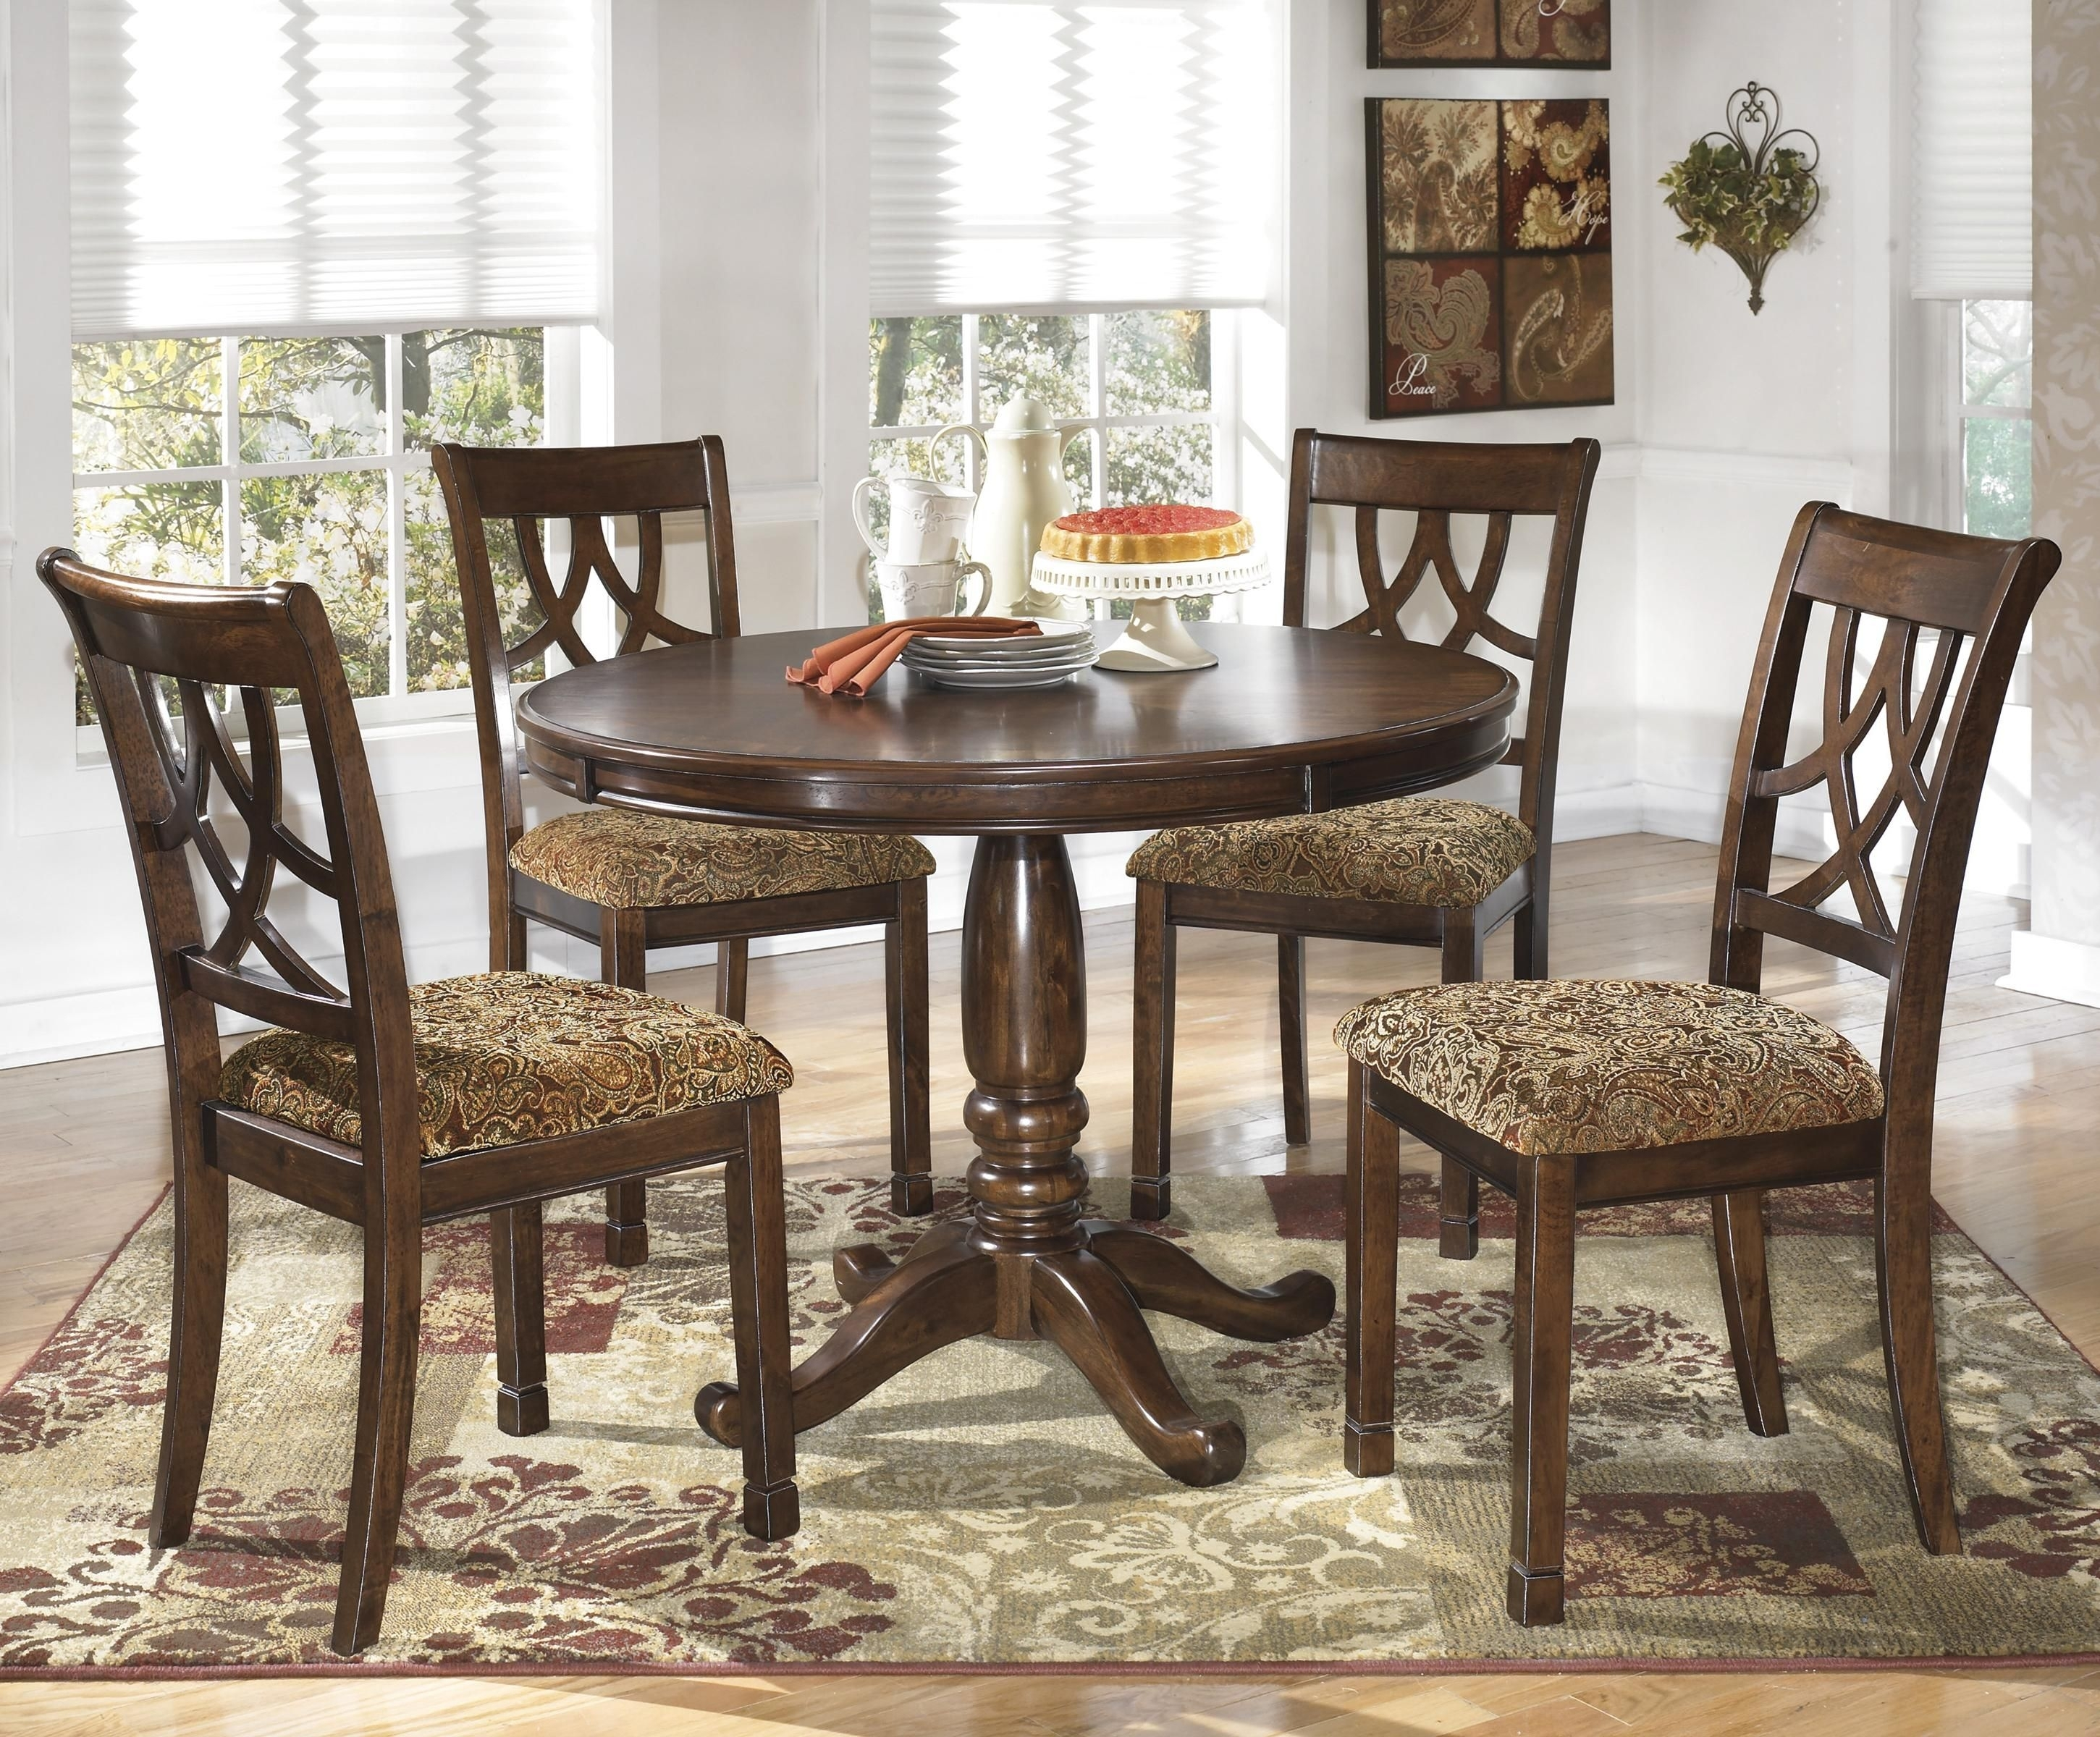 Leahlyn 5 Piece Round Dining Table Setsignature Designashley Inside 2018 Craftsman 9 Piece Extension Dining Sets With Uph Side Chairs (View 9 of 20)